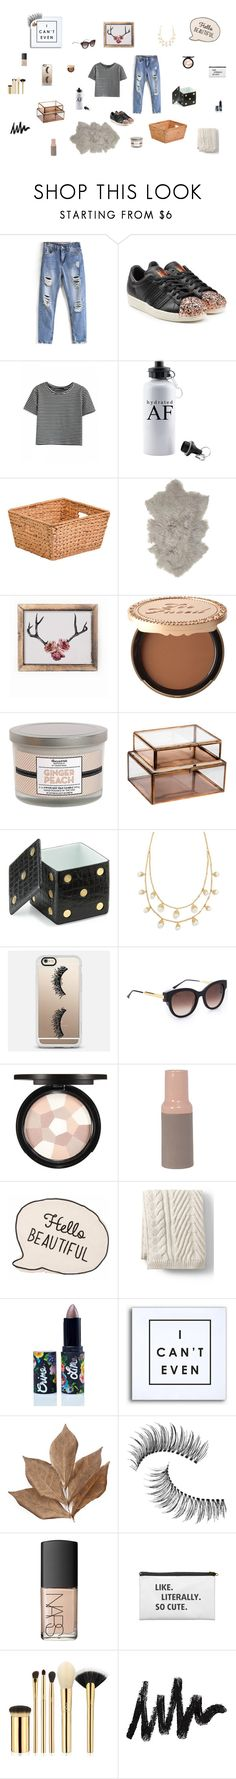 """Hello Fall"" by akilahdavis ❤ liked on Polyvore featuring adidas Originals, Honey-Can-Do, Broste Copenhagen, Too Faced Cosmetics, Vineyard Hill Naturals, NKUKU, L'Objet, Tory Burch, Casetify and Thierry Lasry"